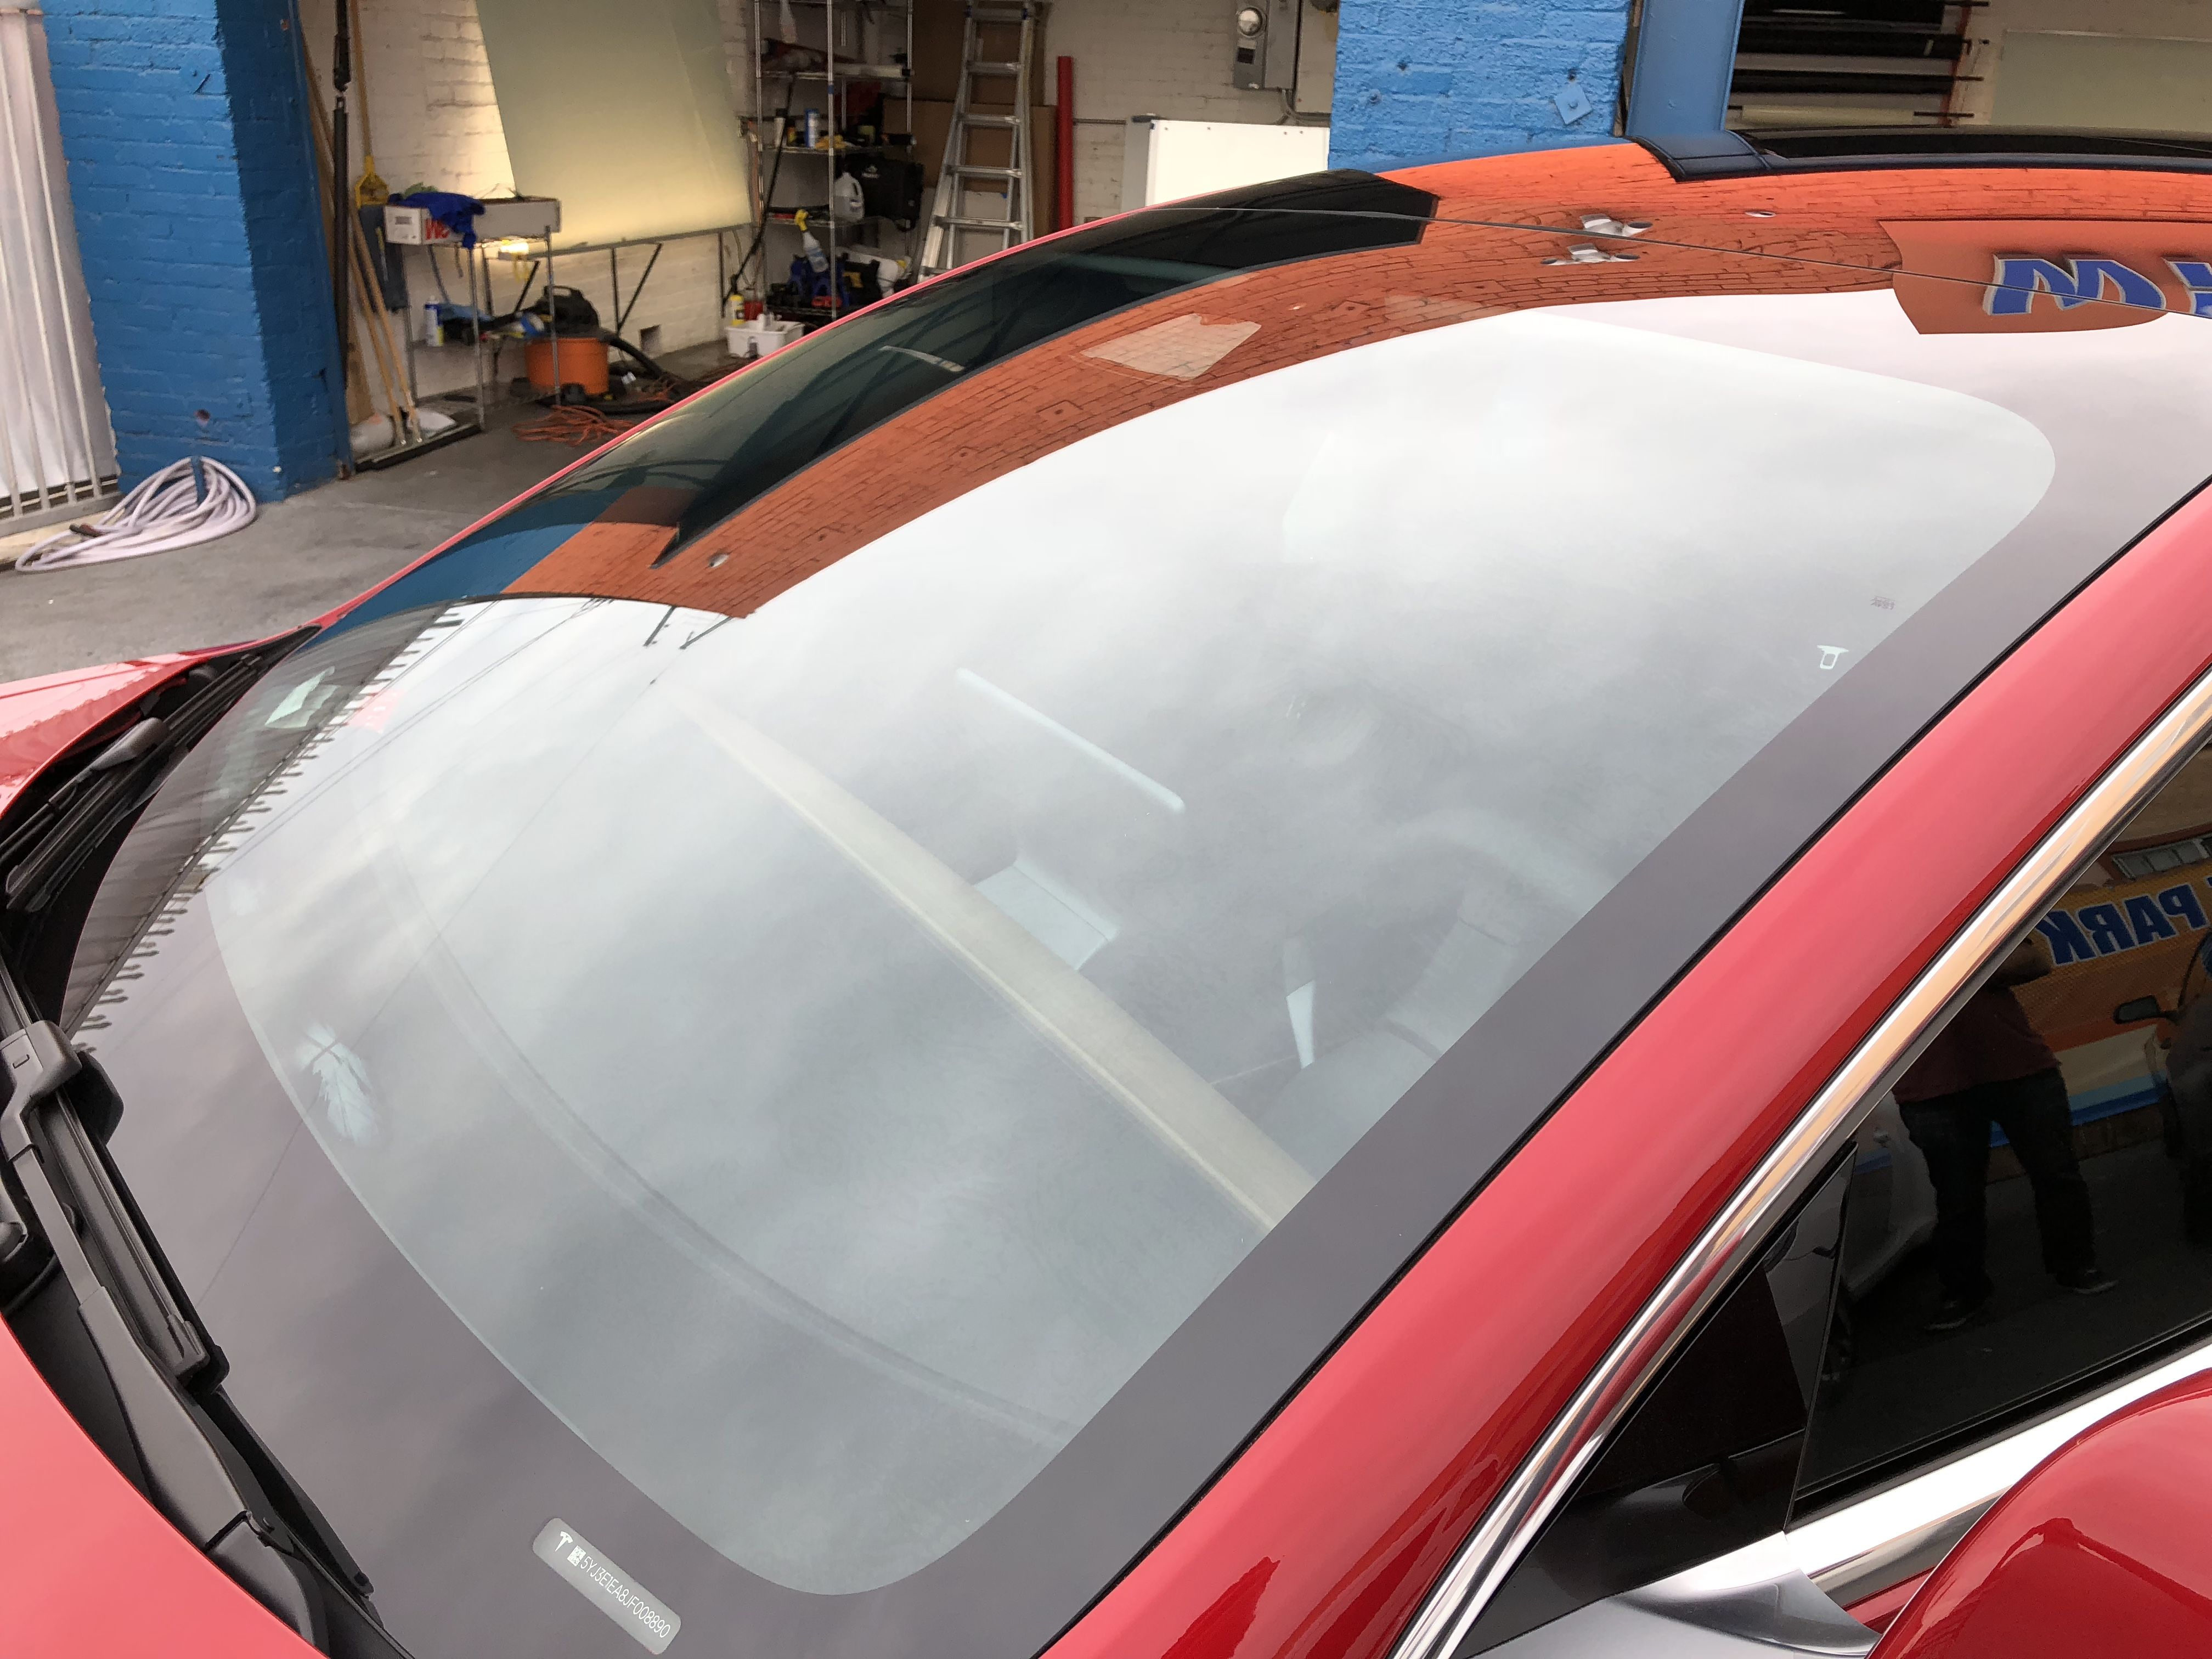 Huper Optik Ceramic Tint 70 Applied To The Windshield Of This